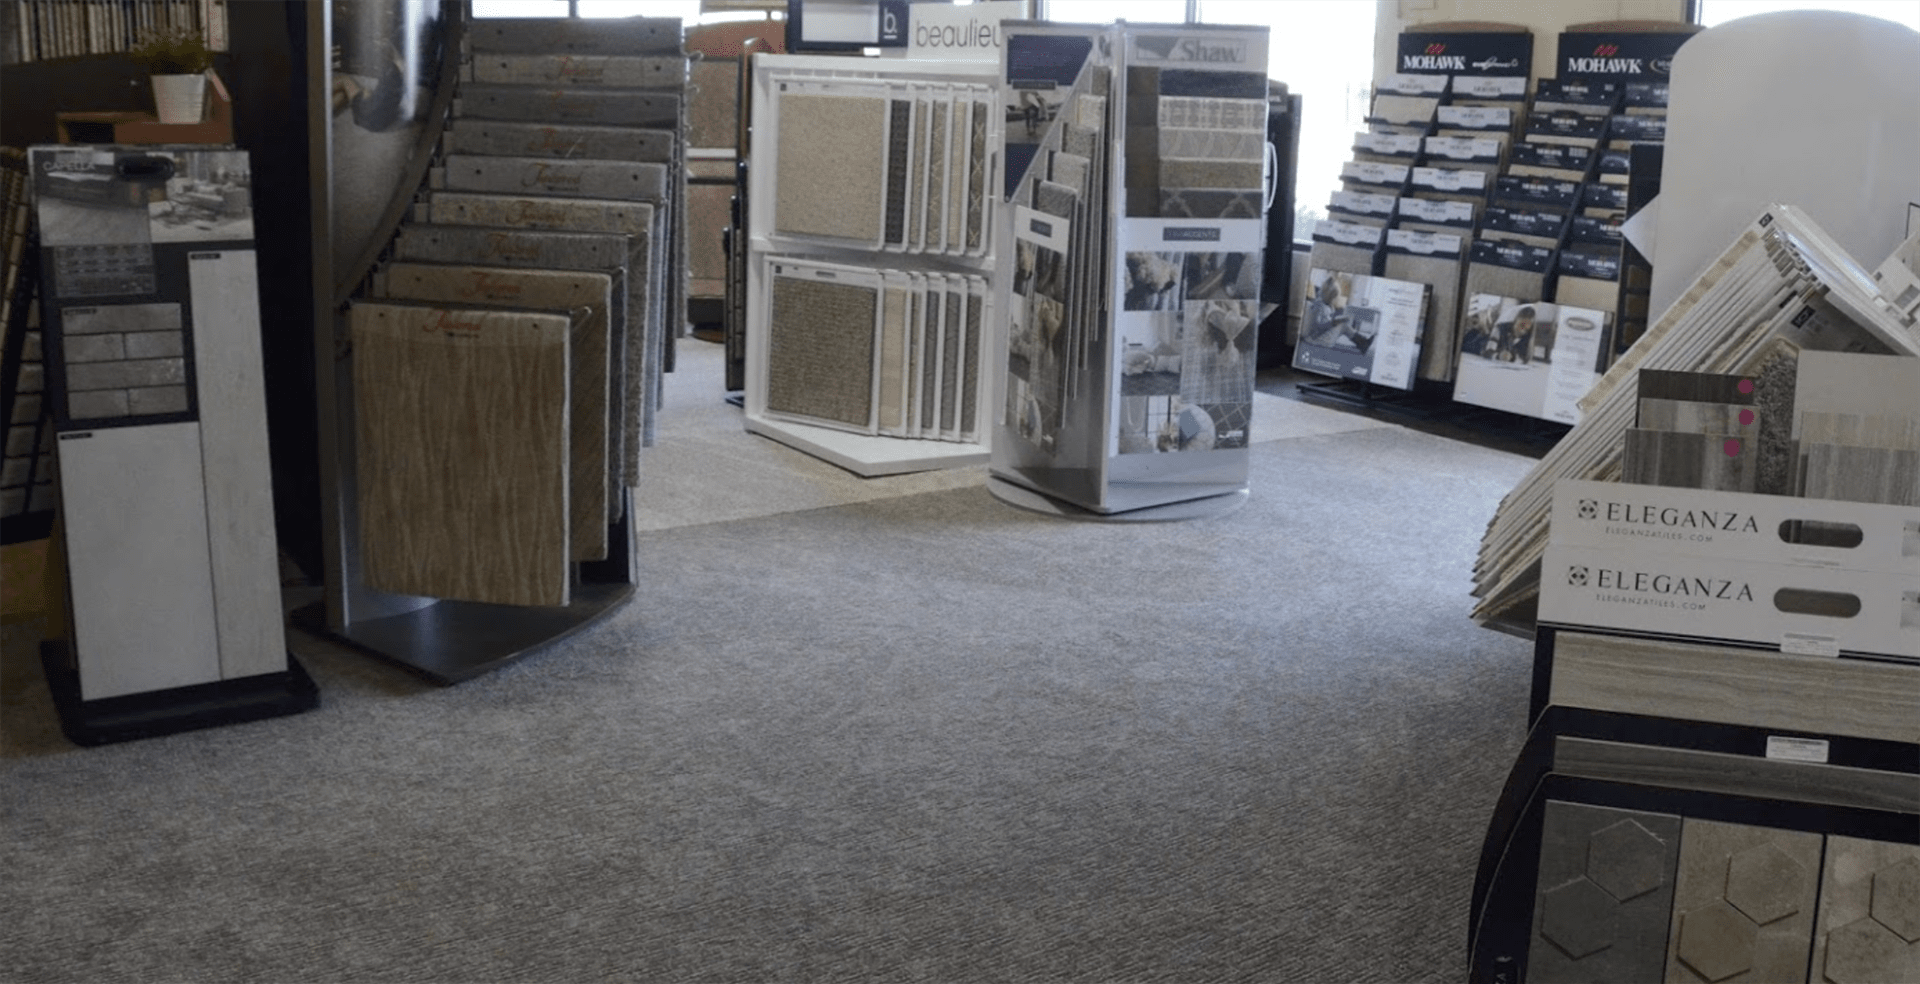 Superb Carpets, Inc. showroom in St. Charles, IL